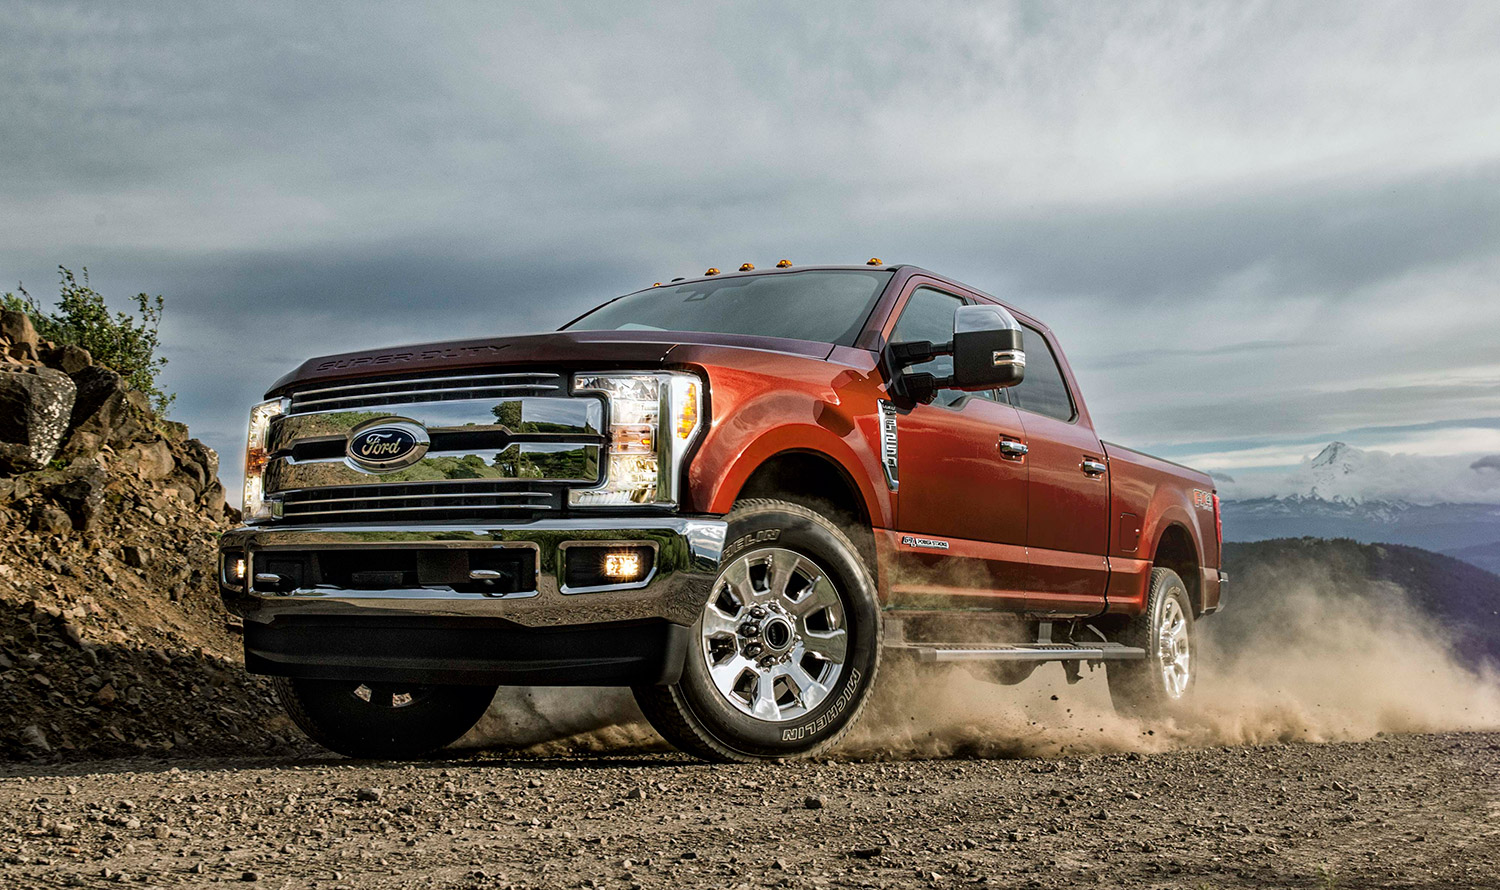 2017 Ford Super Duty Ford of Orange County tustin irvine anaheim